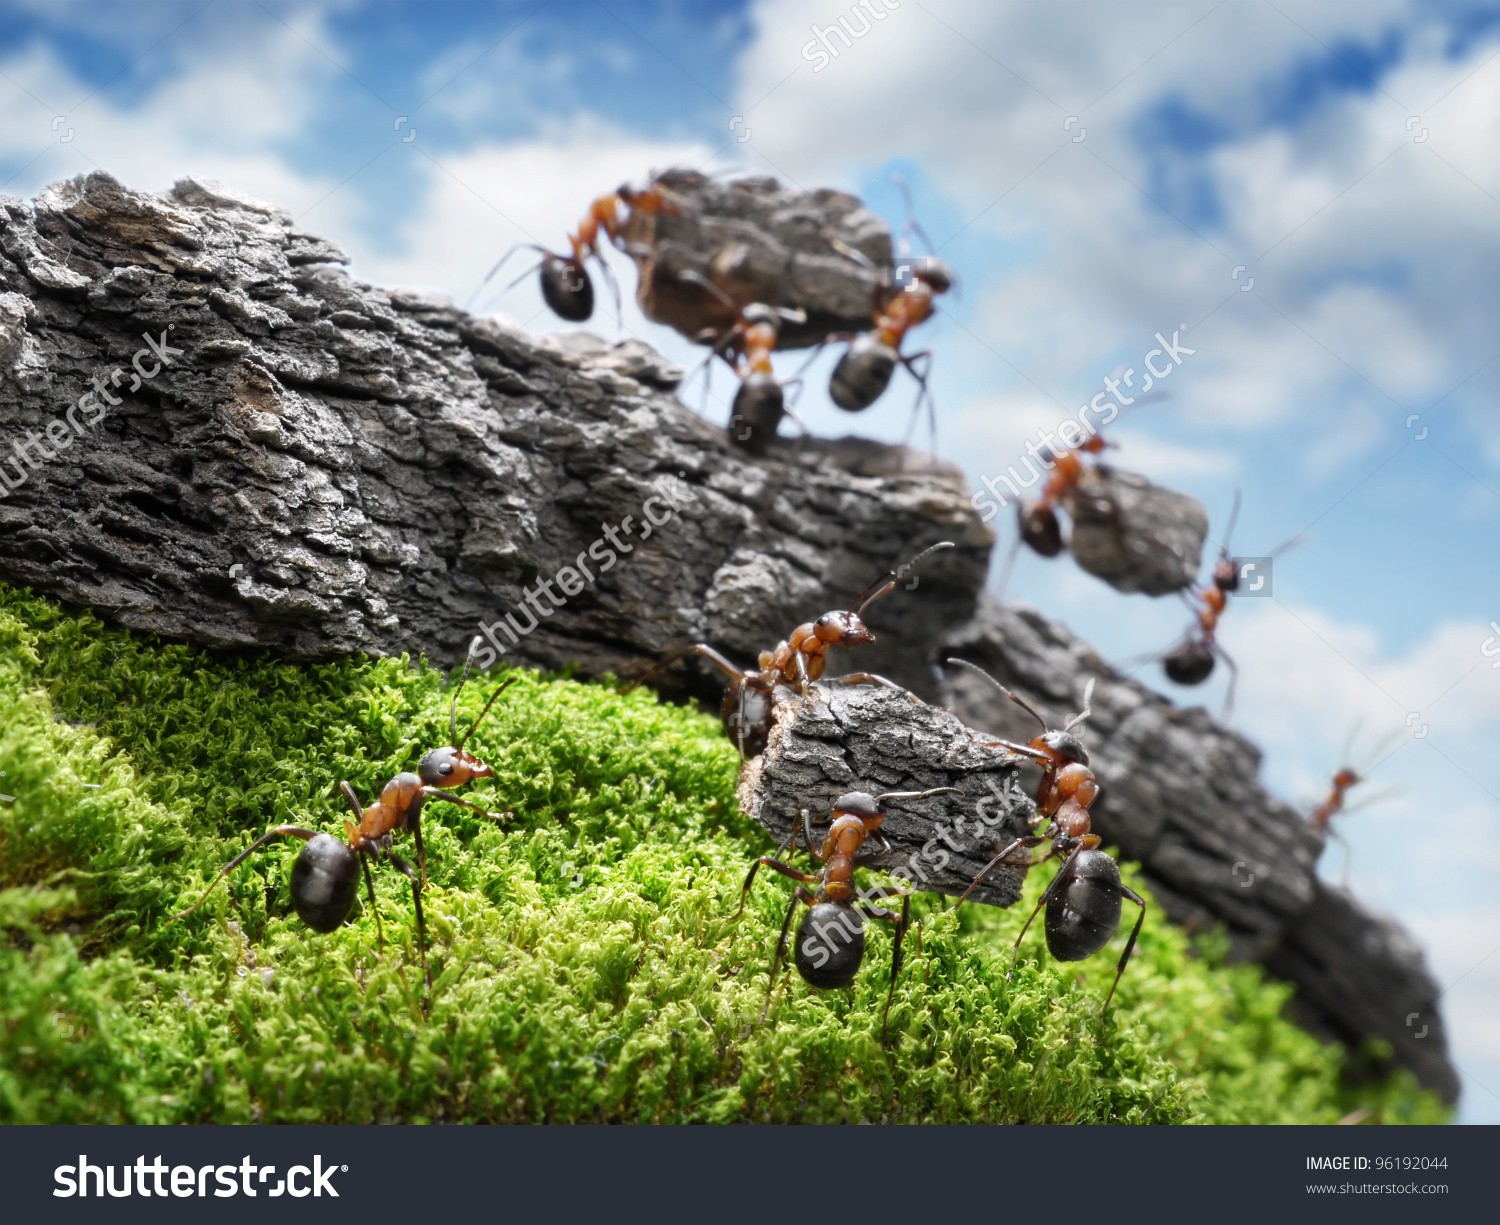 Team Ants Constructing Great Wall Teamwork Stock Photo 96192044.